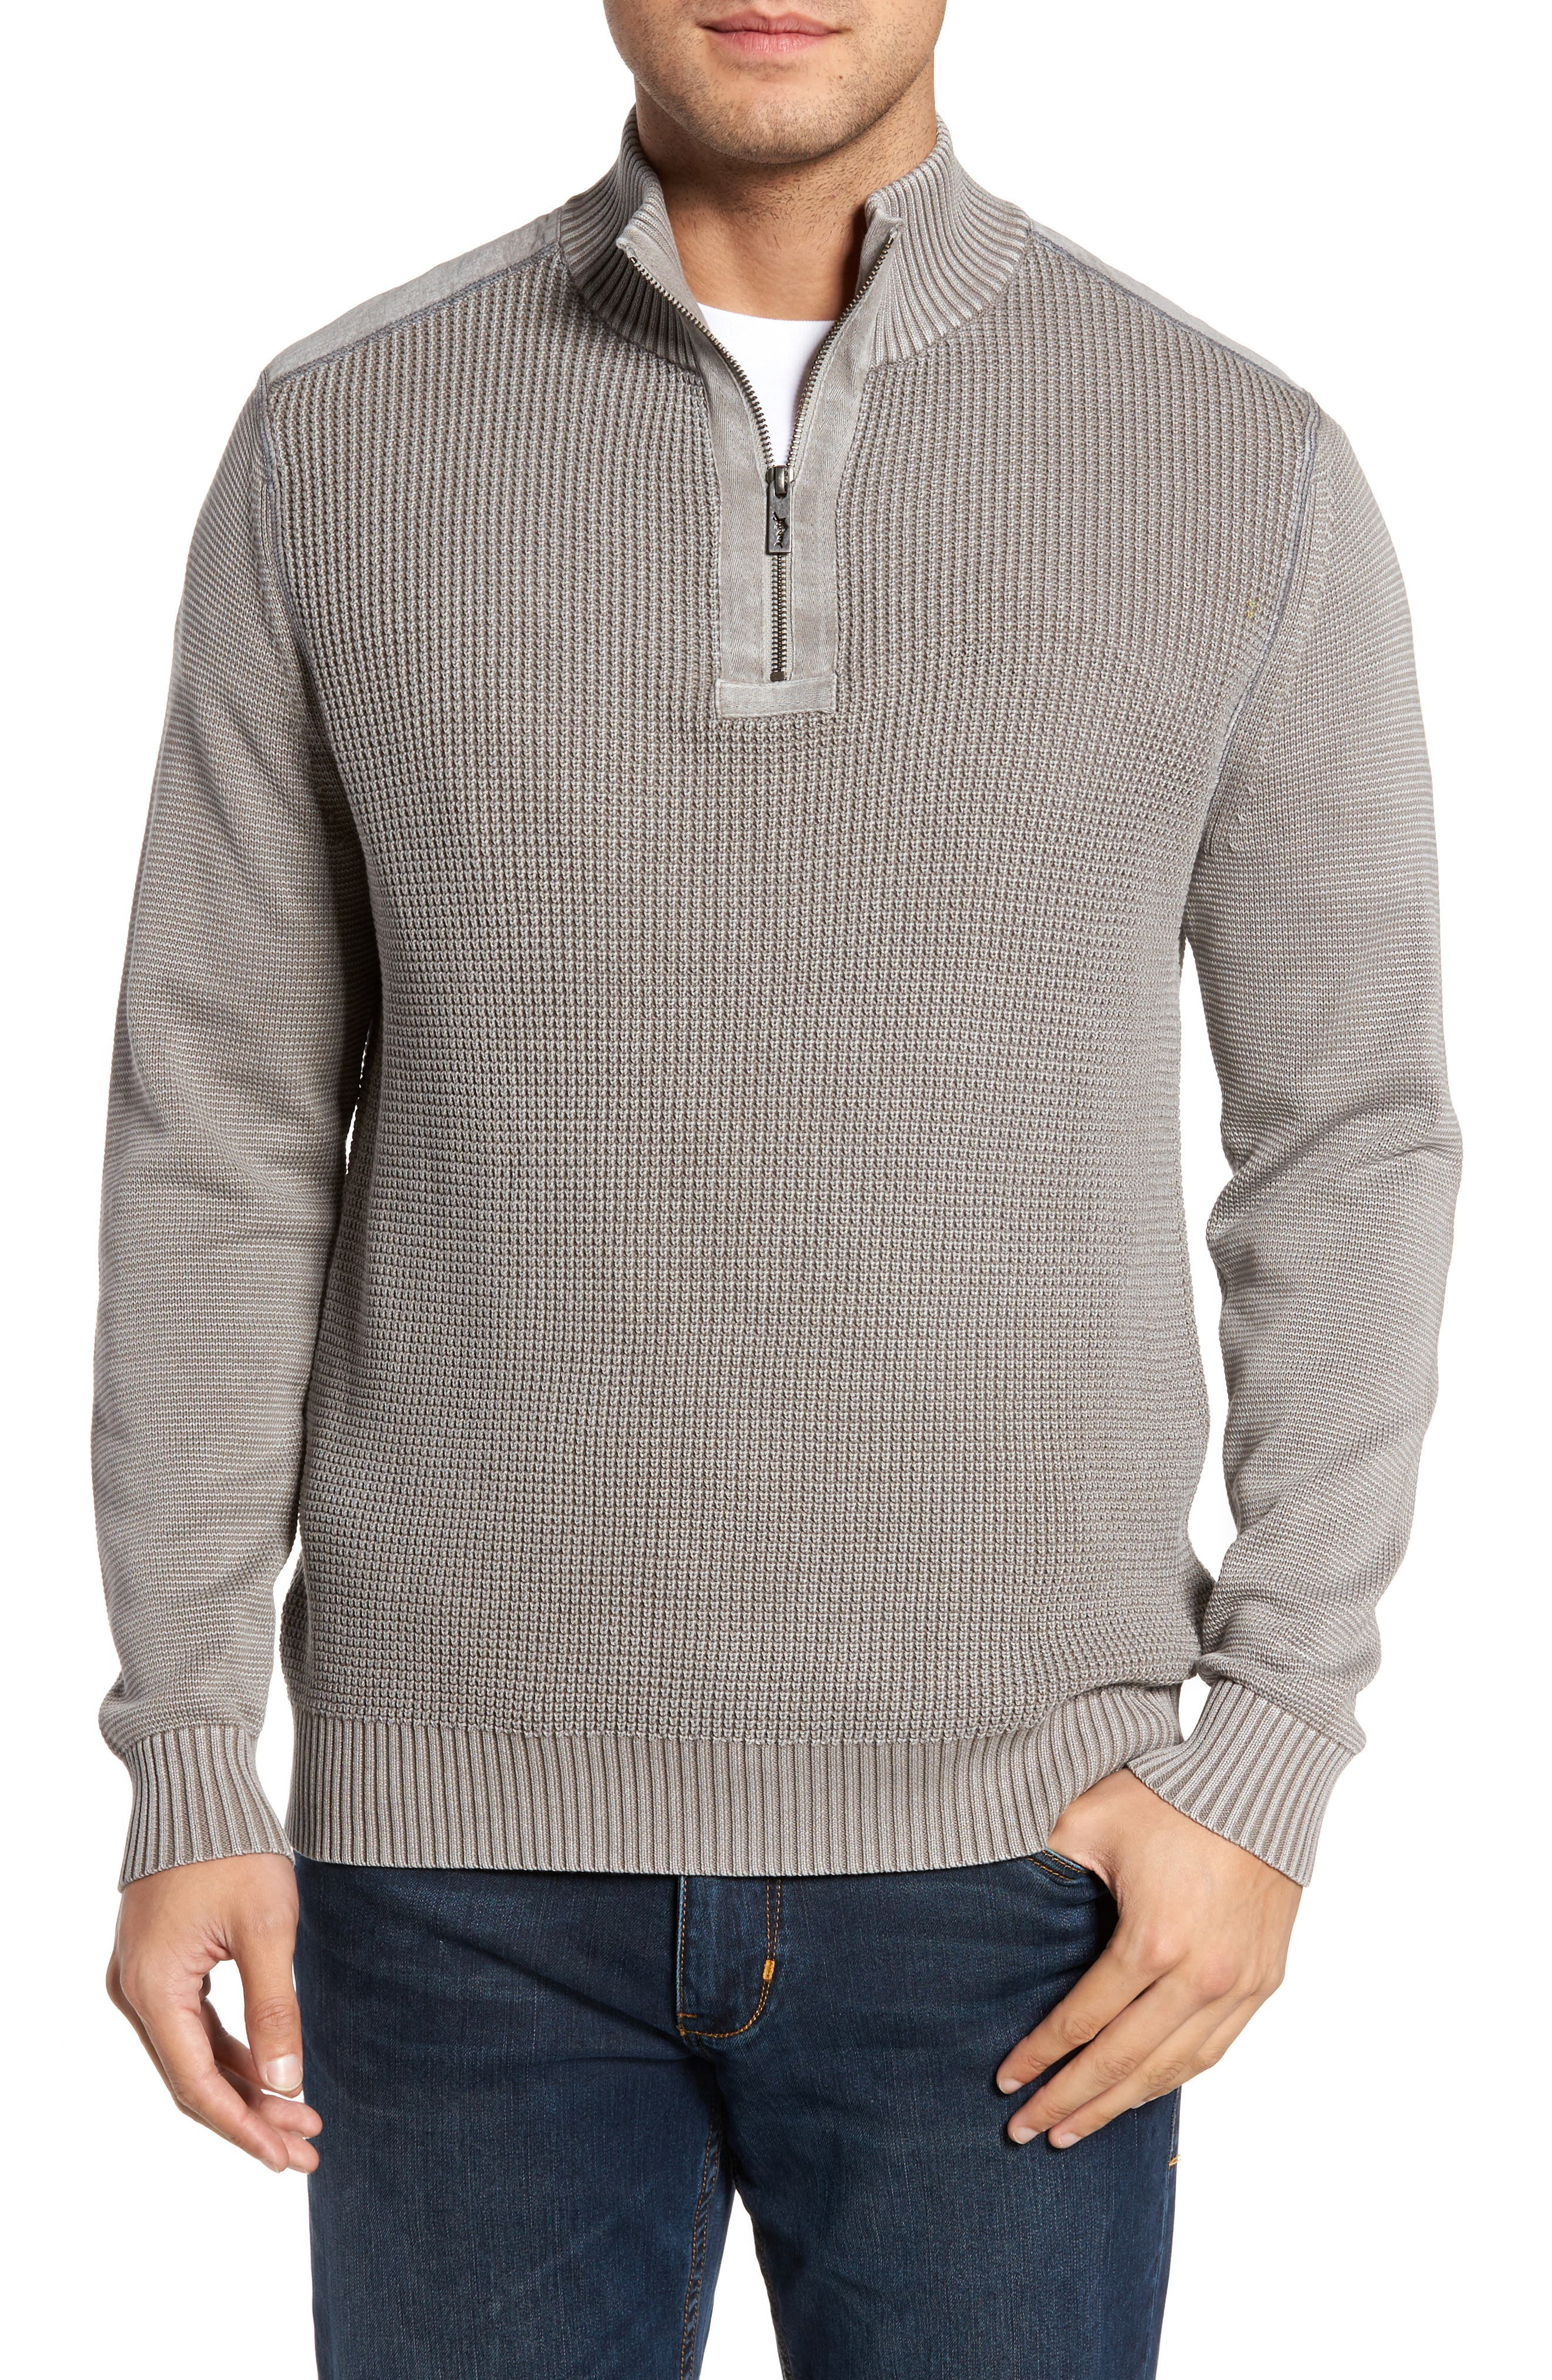 Tommy Bahama 'Coastal Shores' Quarter Zip Sweater